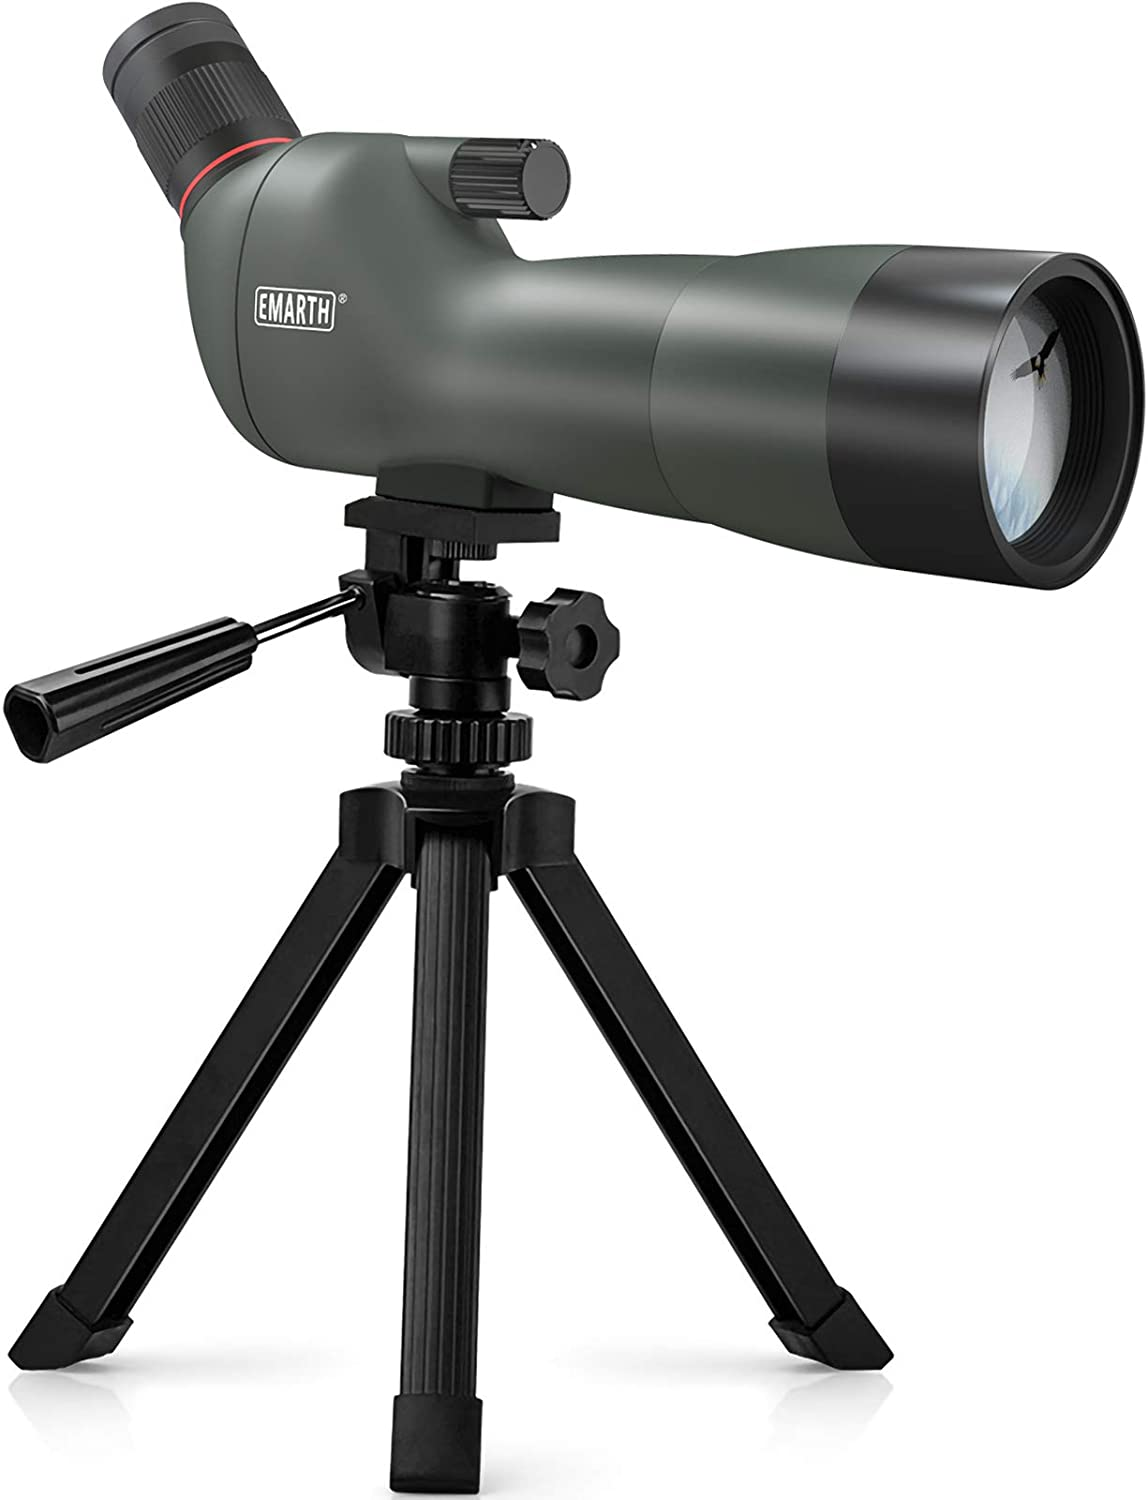 Emarth 20-60x60SE Straight Spotting Scope Review